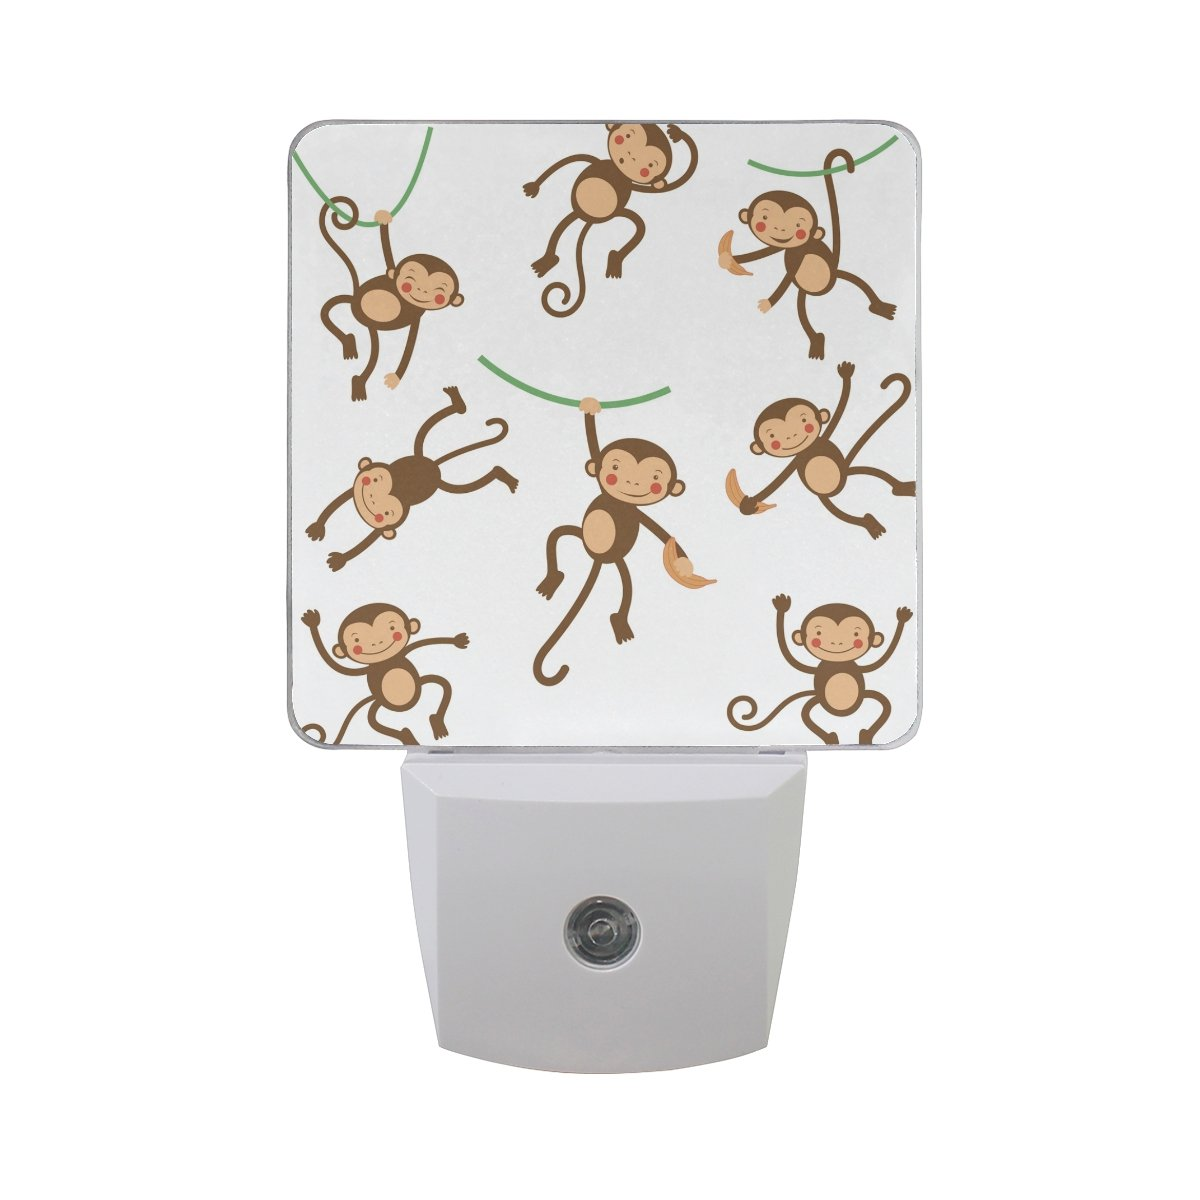 XinMing Cute Funny Monkey White LED Sensor Night Light Super Bright Power Dusk To Dawn Sensor Bedroom Kitchen Bathroom Hallway Toilet Stairs Energy Efficient Compact(2 PACK)